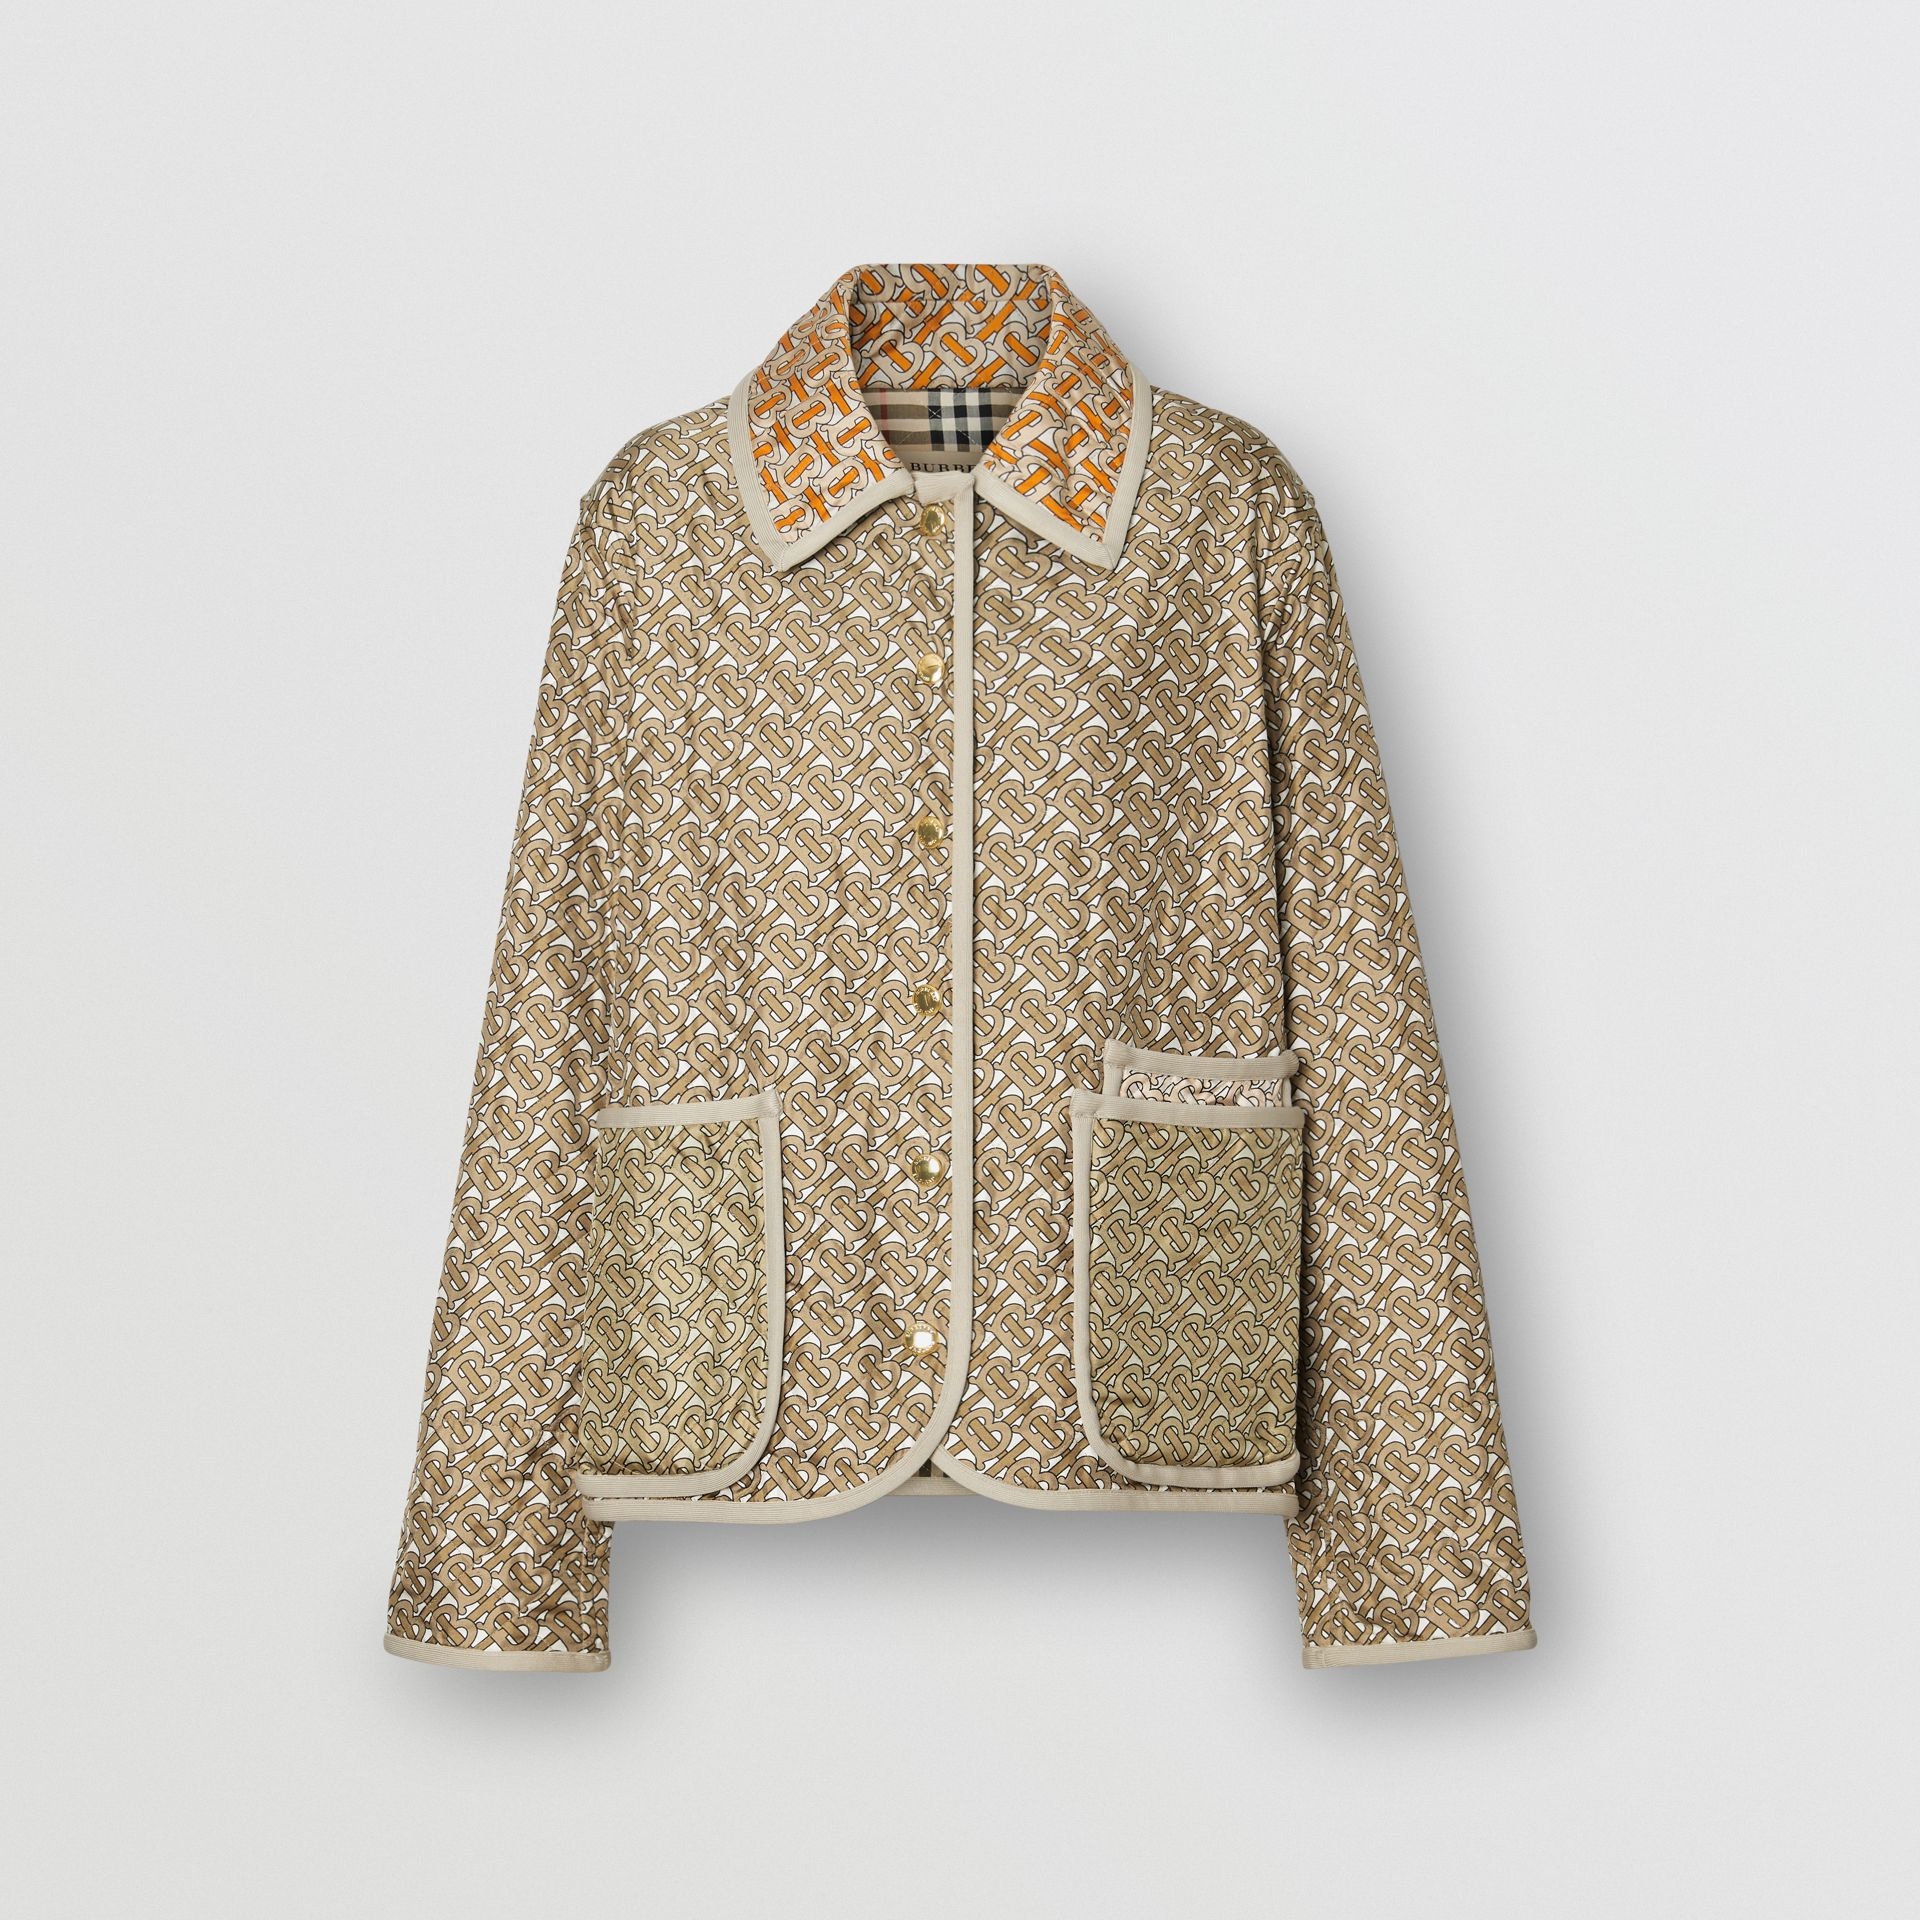 Monogram Print Quilted Silk Jacket in Archive Beige - Women | Burberry United States - gallery image 3